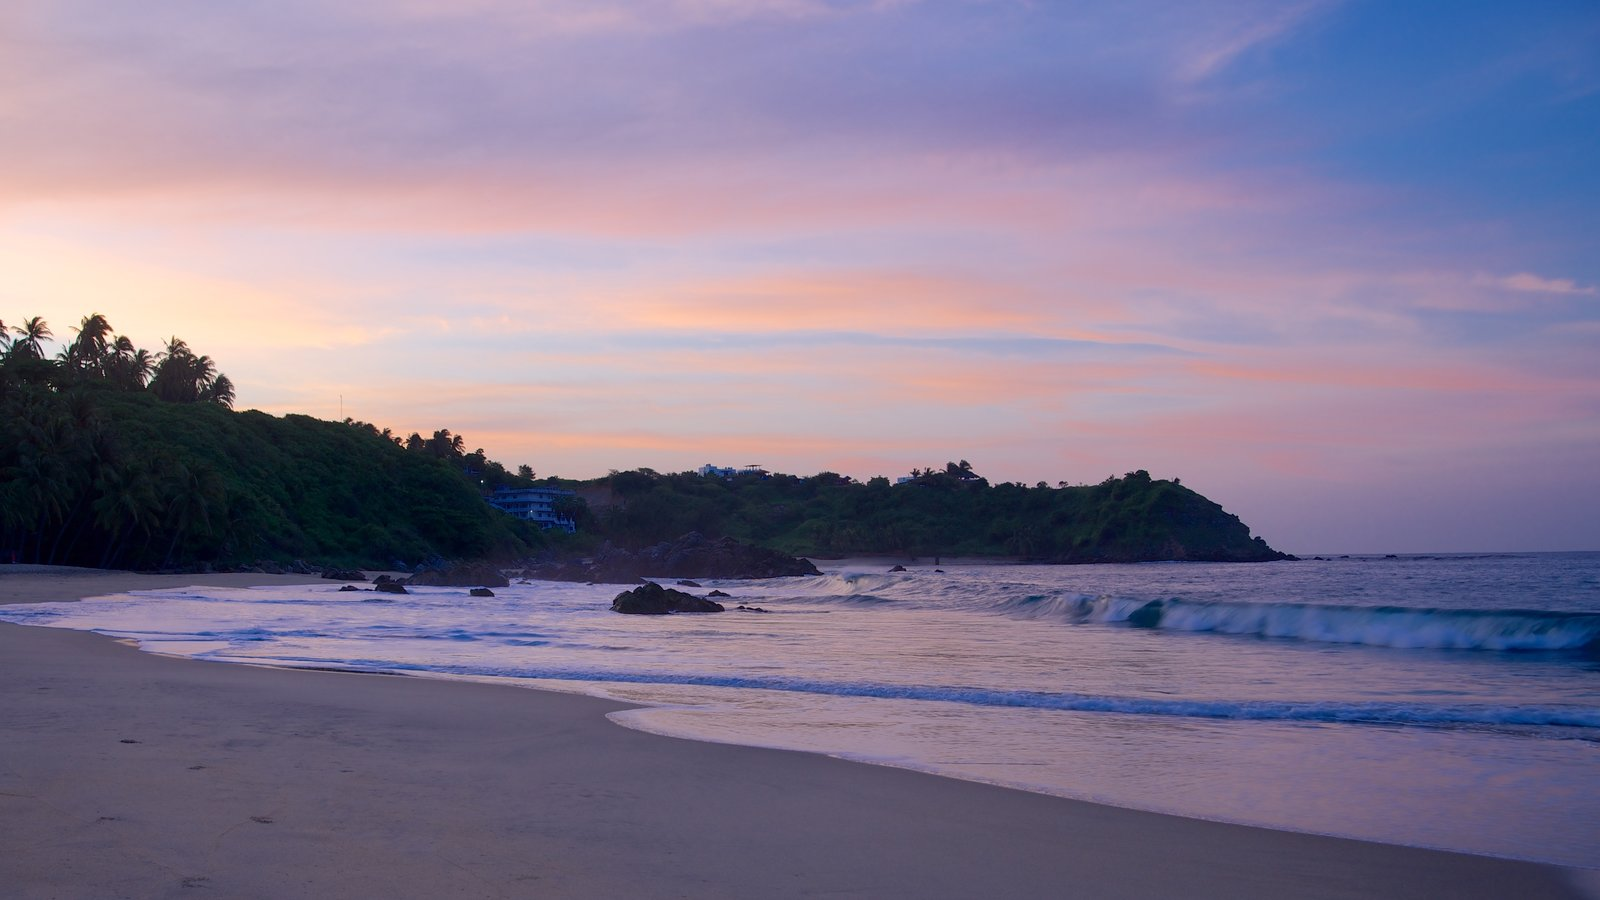 Bacocho Beach featuring rugged coastline, a beach and a sunset